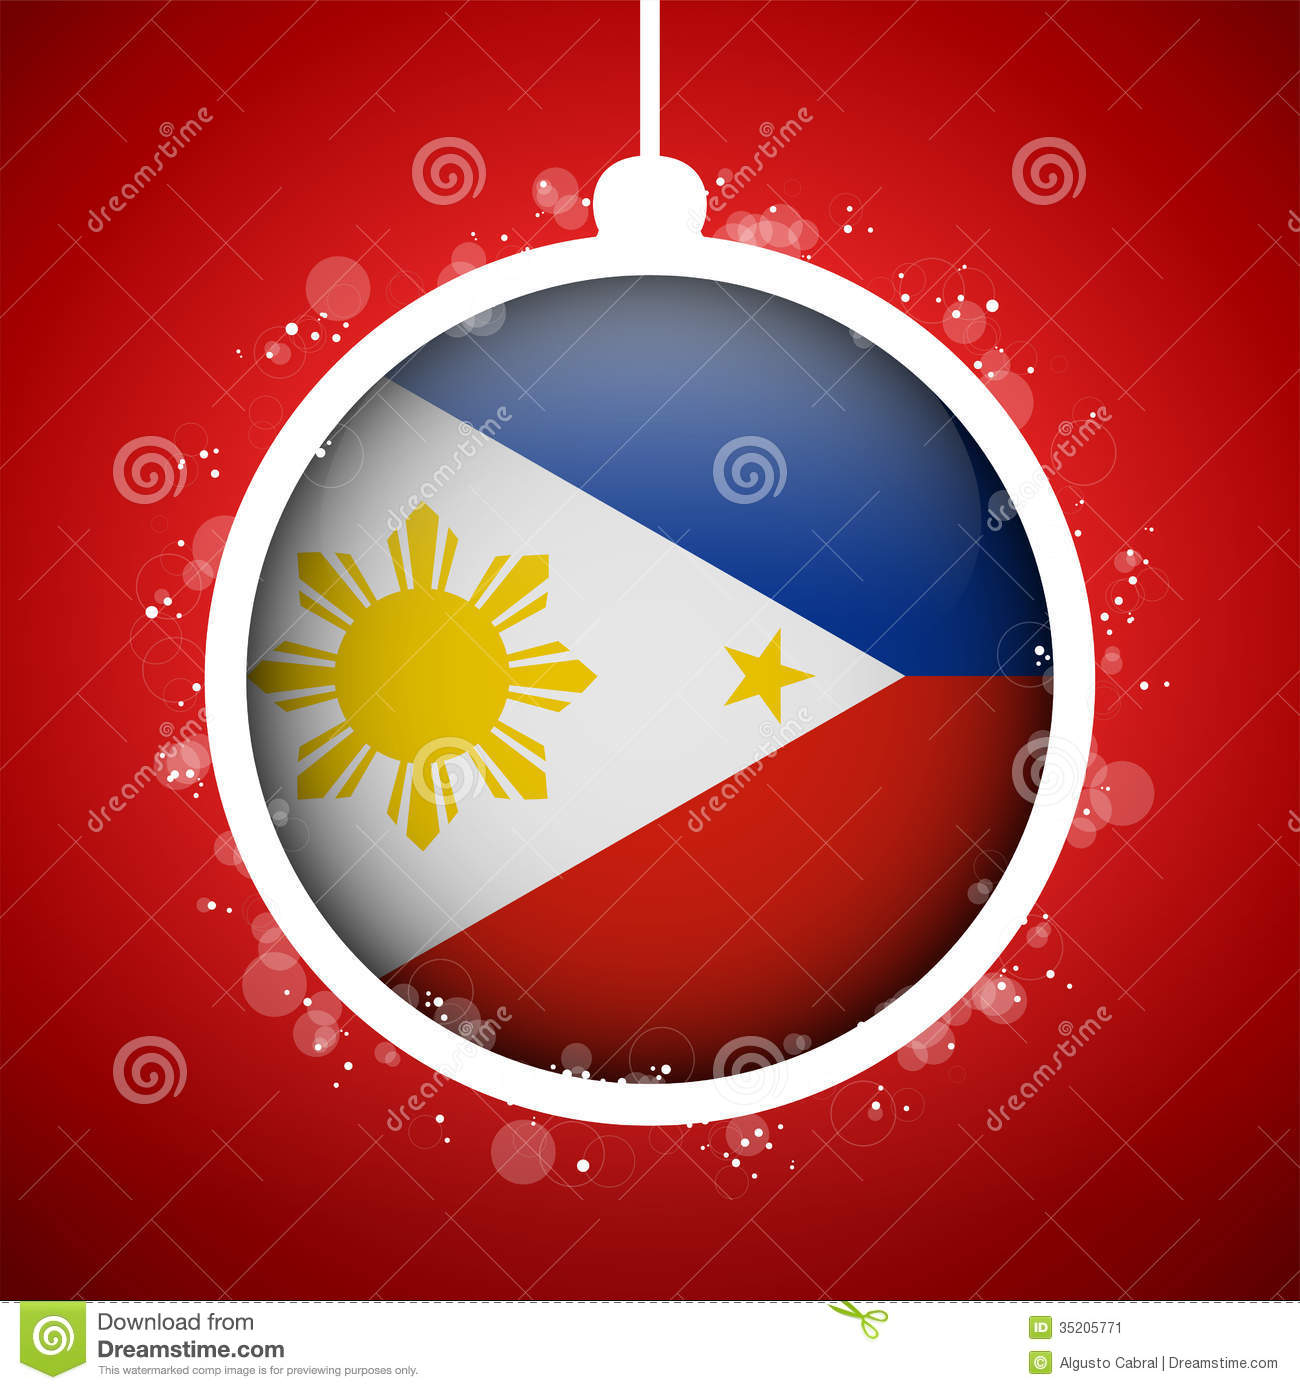 Merry Christmas Red Ball With Flag Philippines Stock